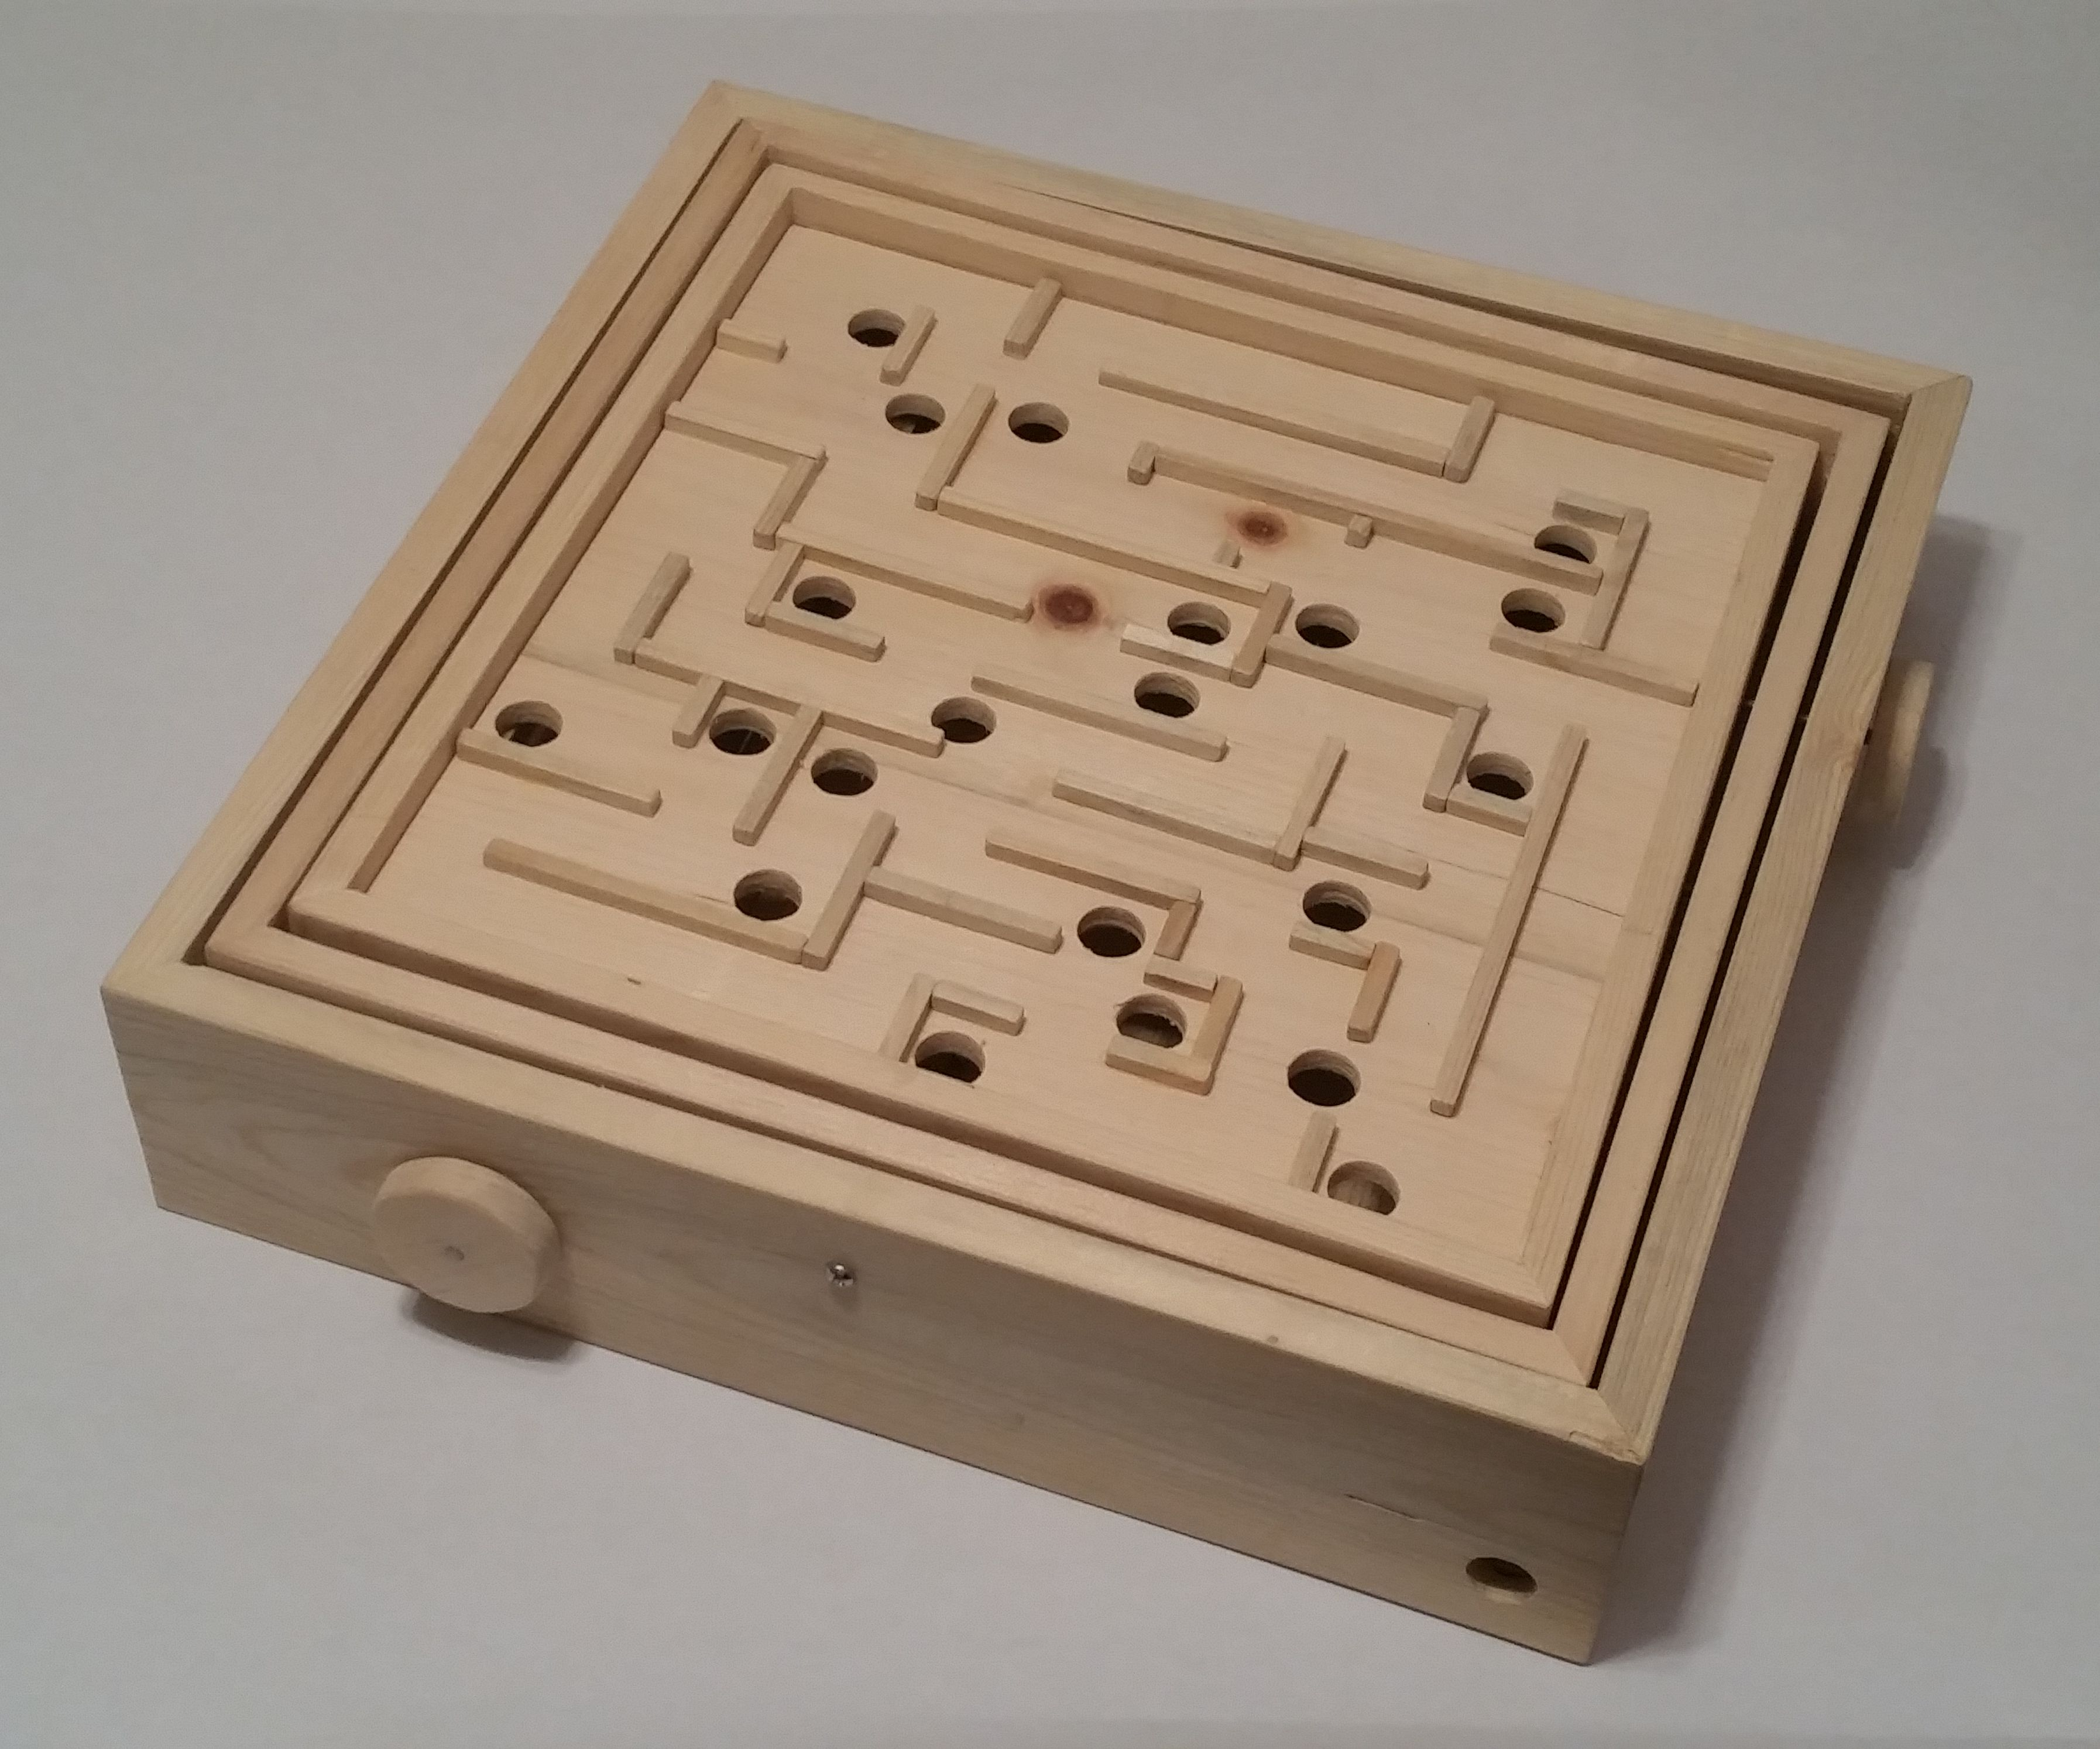 Labyrinth - From a Single 2x4